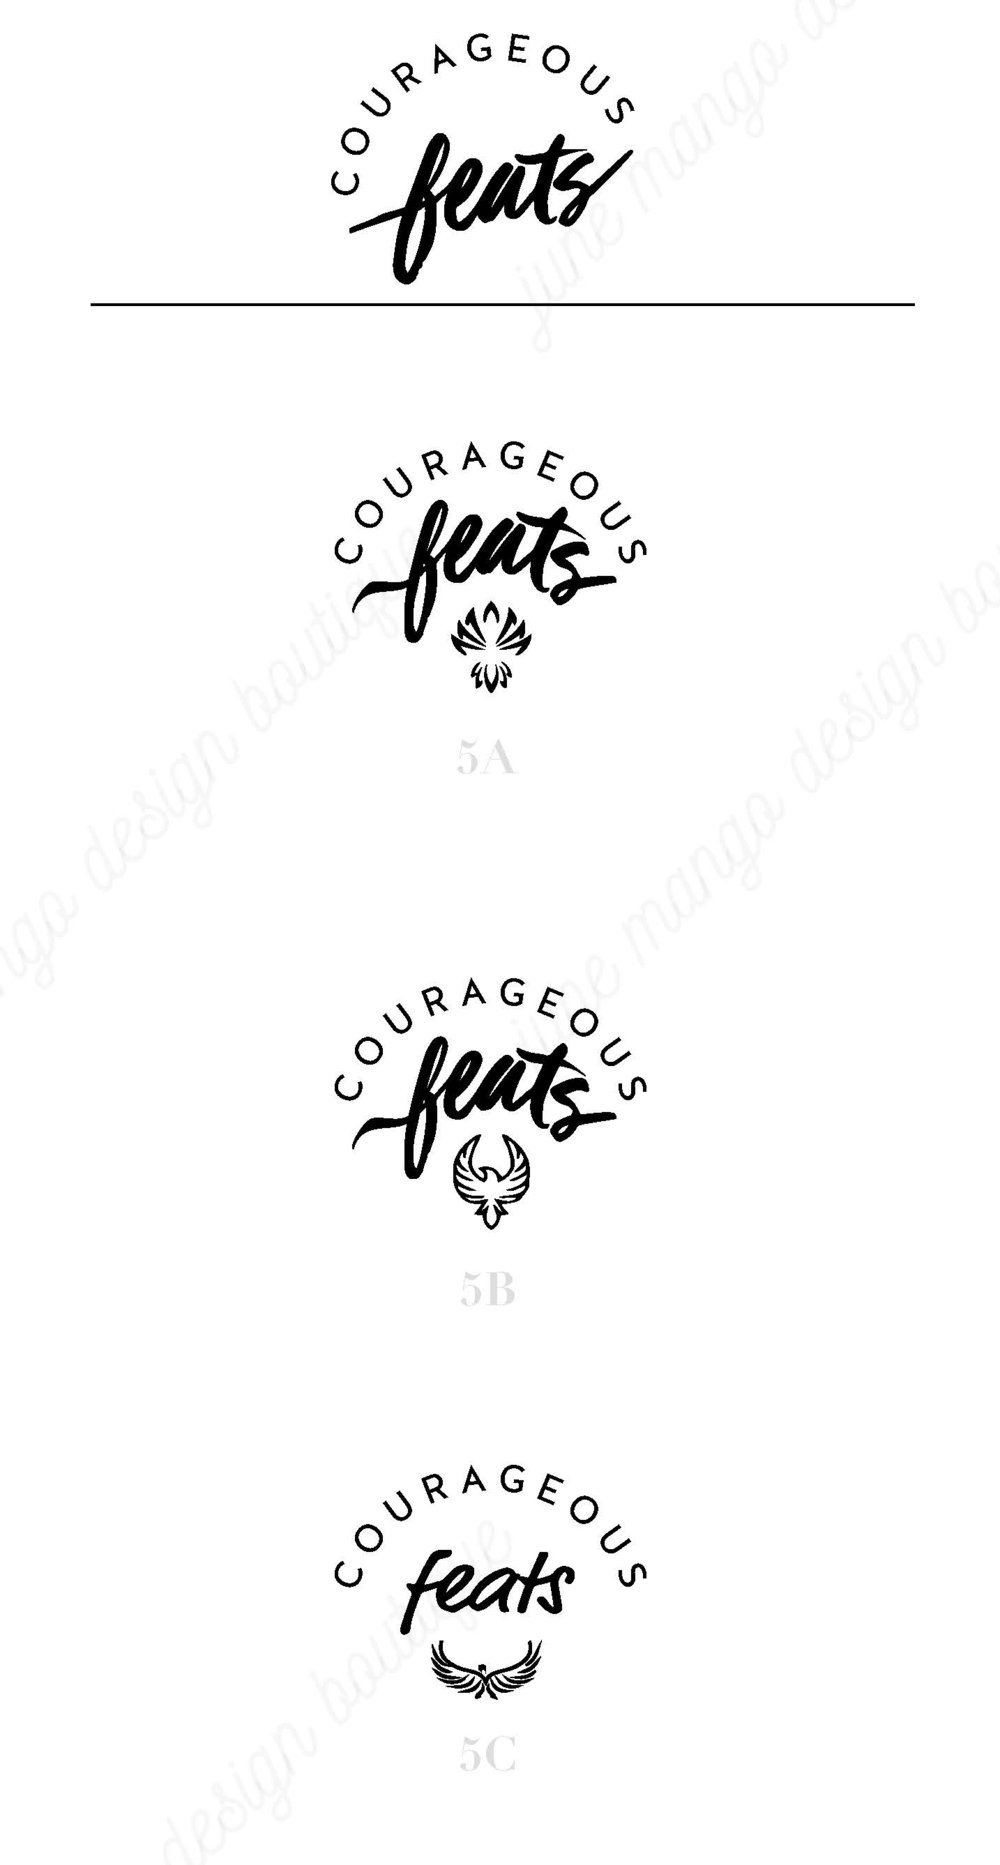 Courageous-Feats-Logo-01.jpg